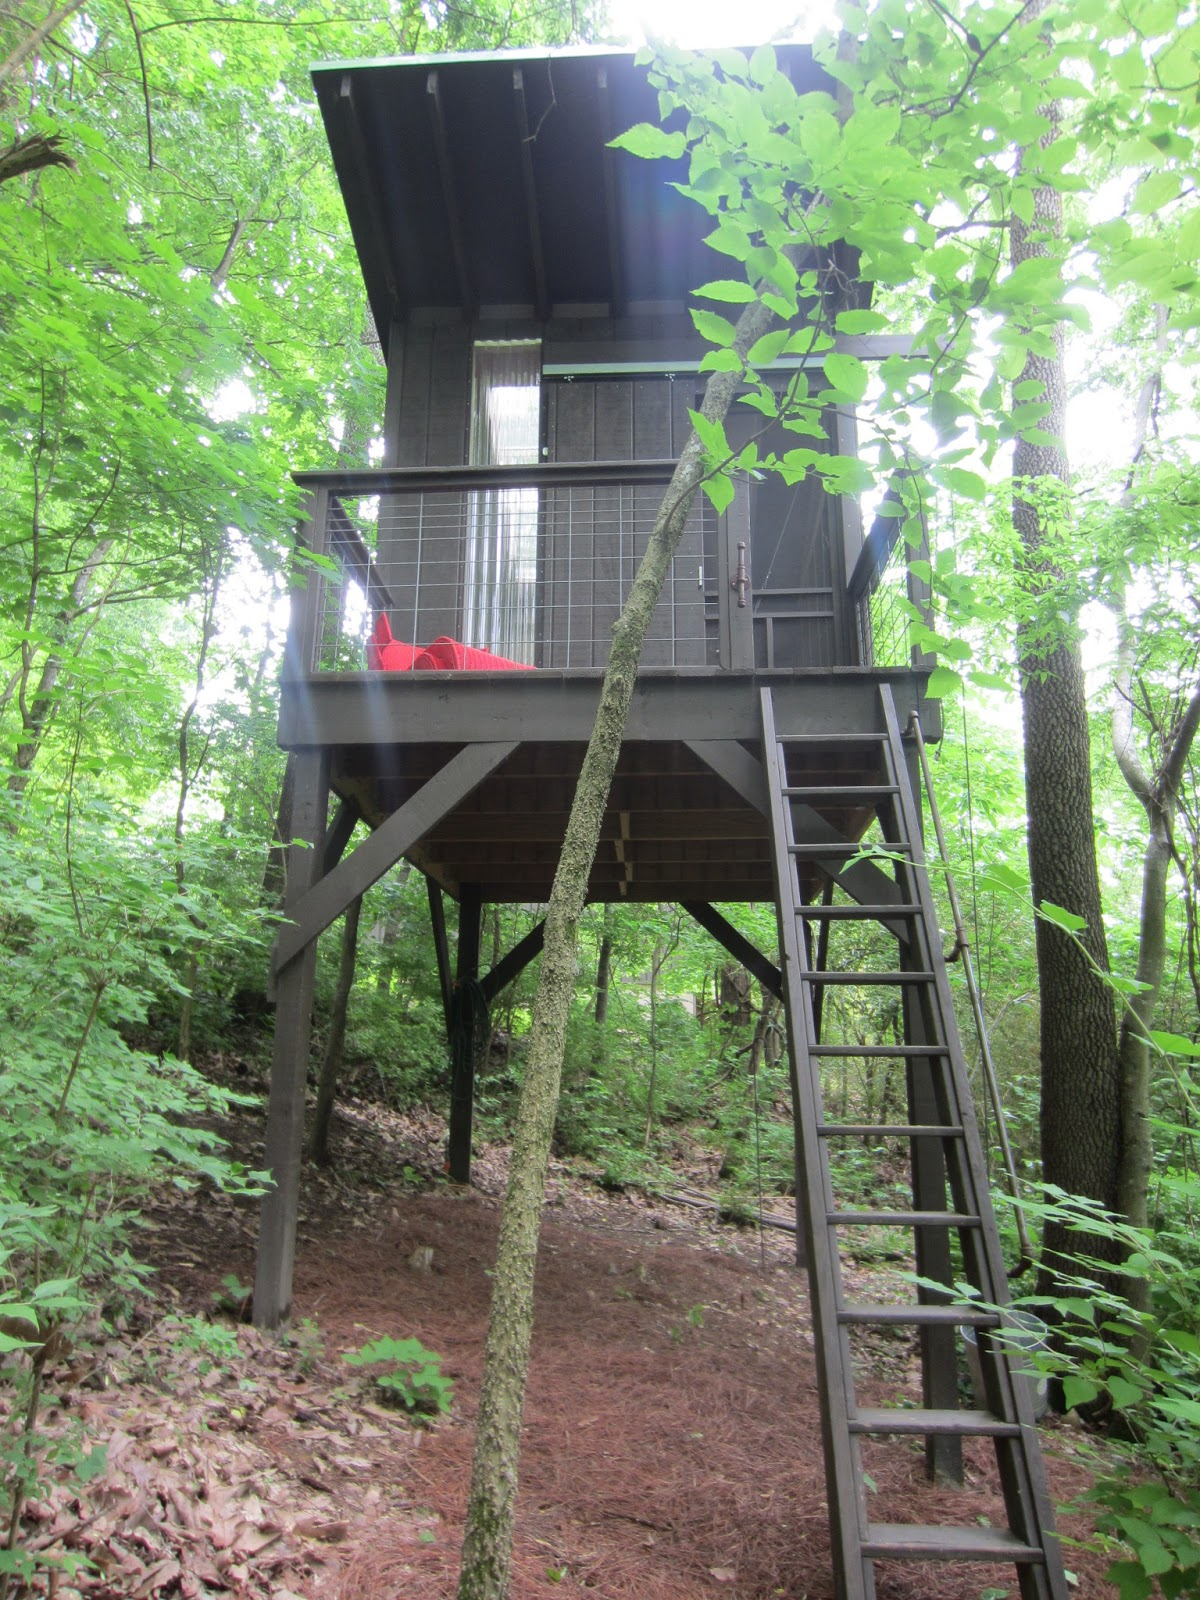 Relaxshackscom A Modern Tree HouseTiny Stilt House in